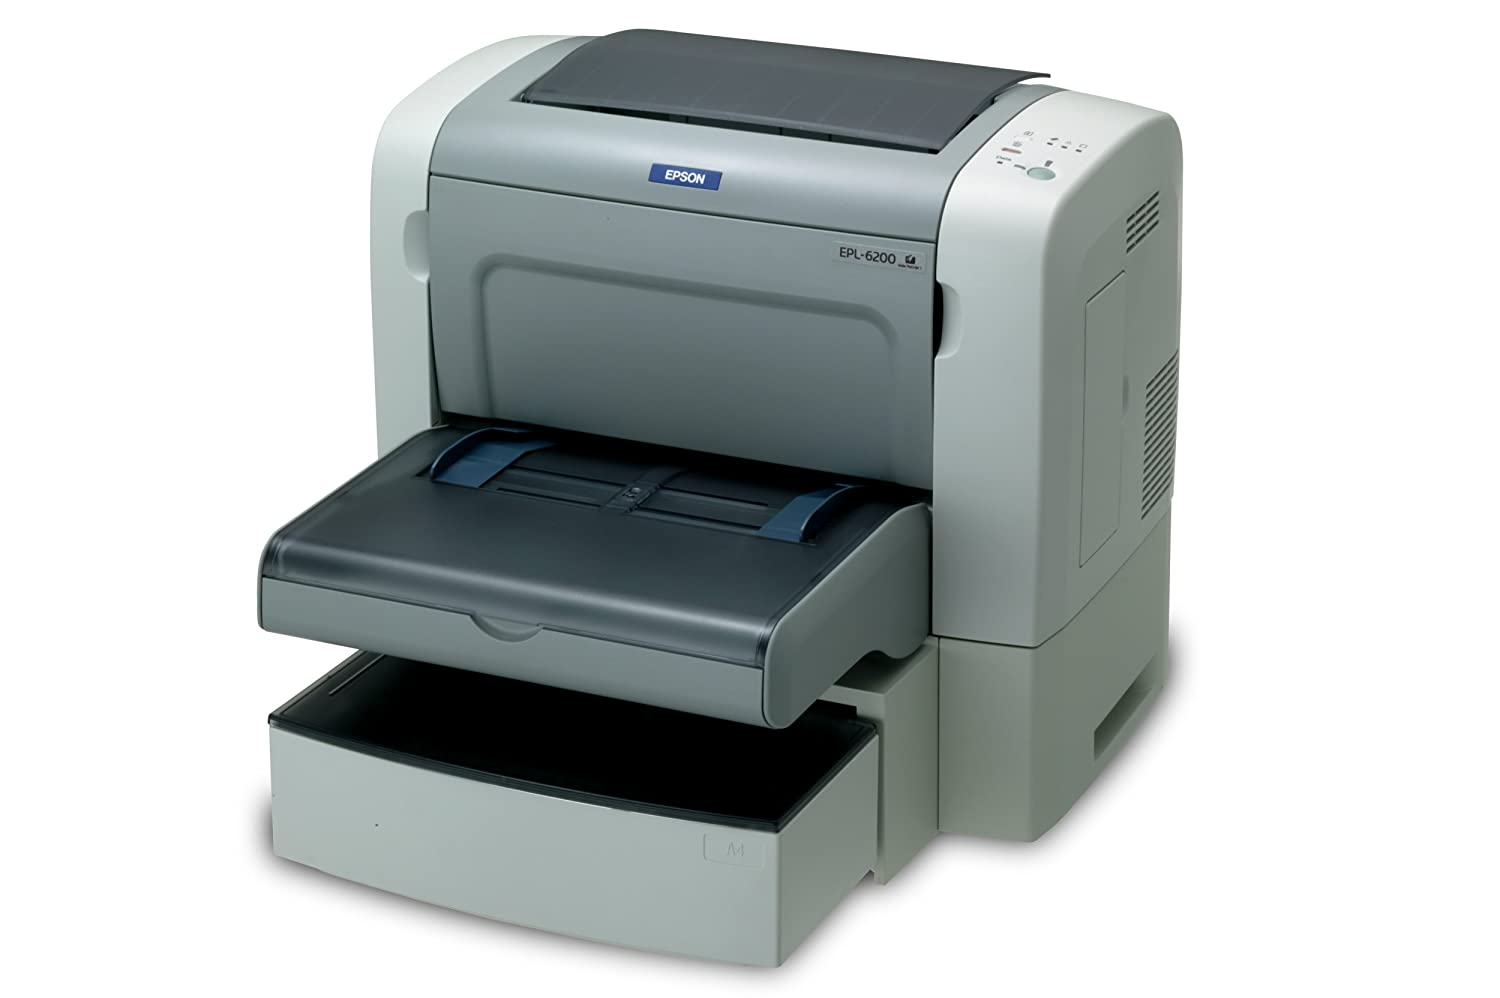 driver epson epl 6200